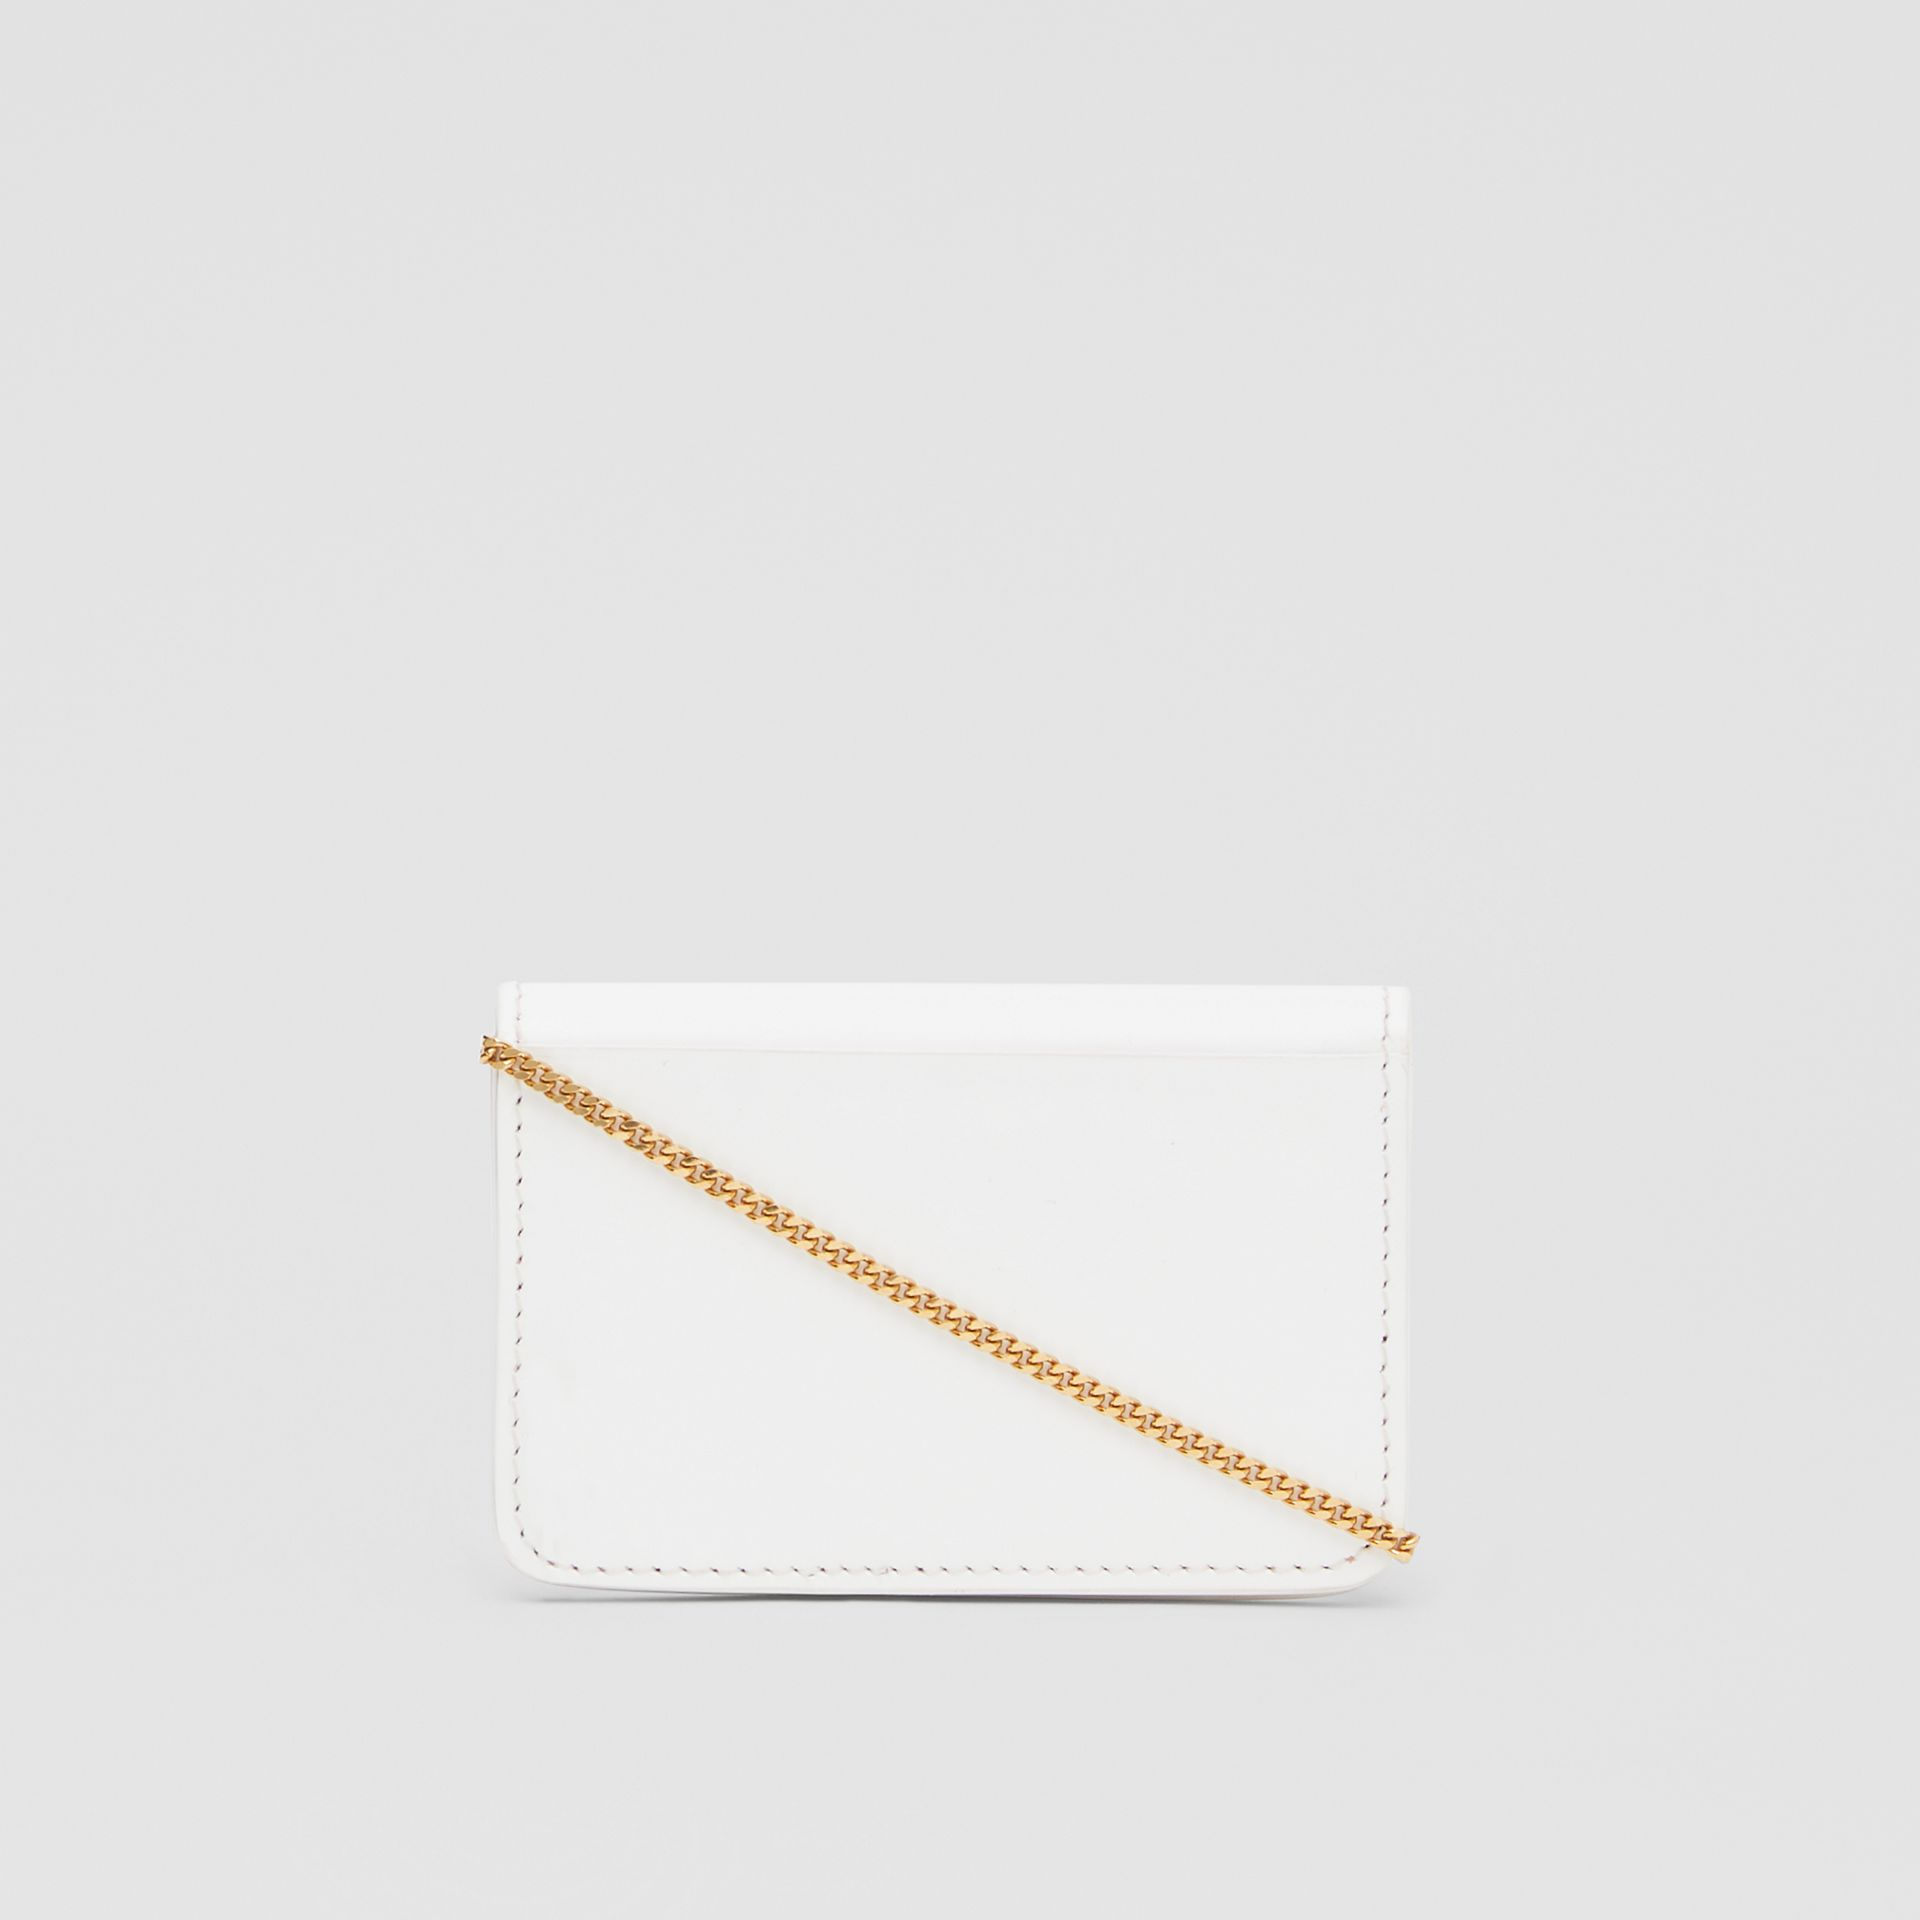 Porte-cartes en cuir Monogram avec sangle en chaîne (Blanc) | Burberry - photo de la galerie 9